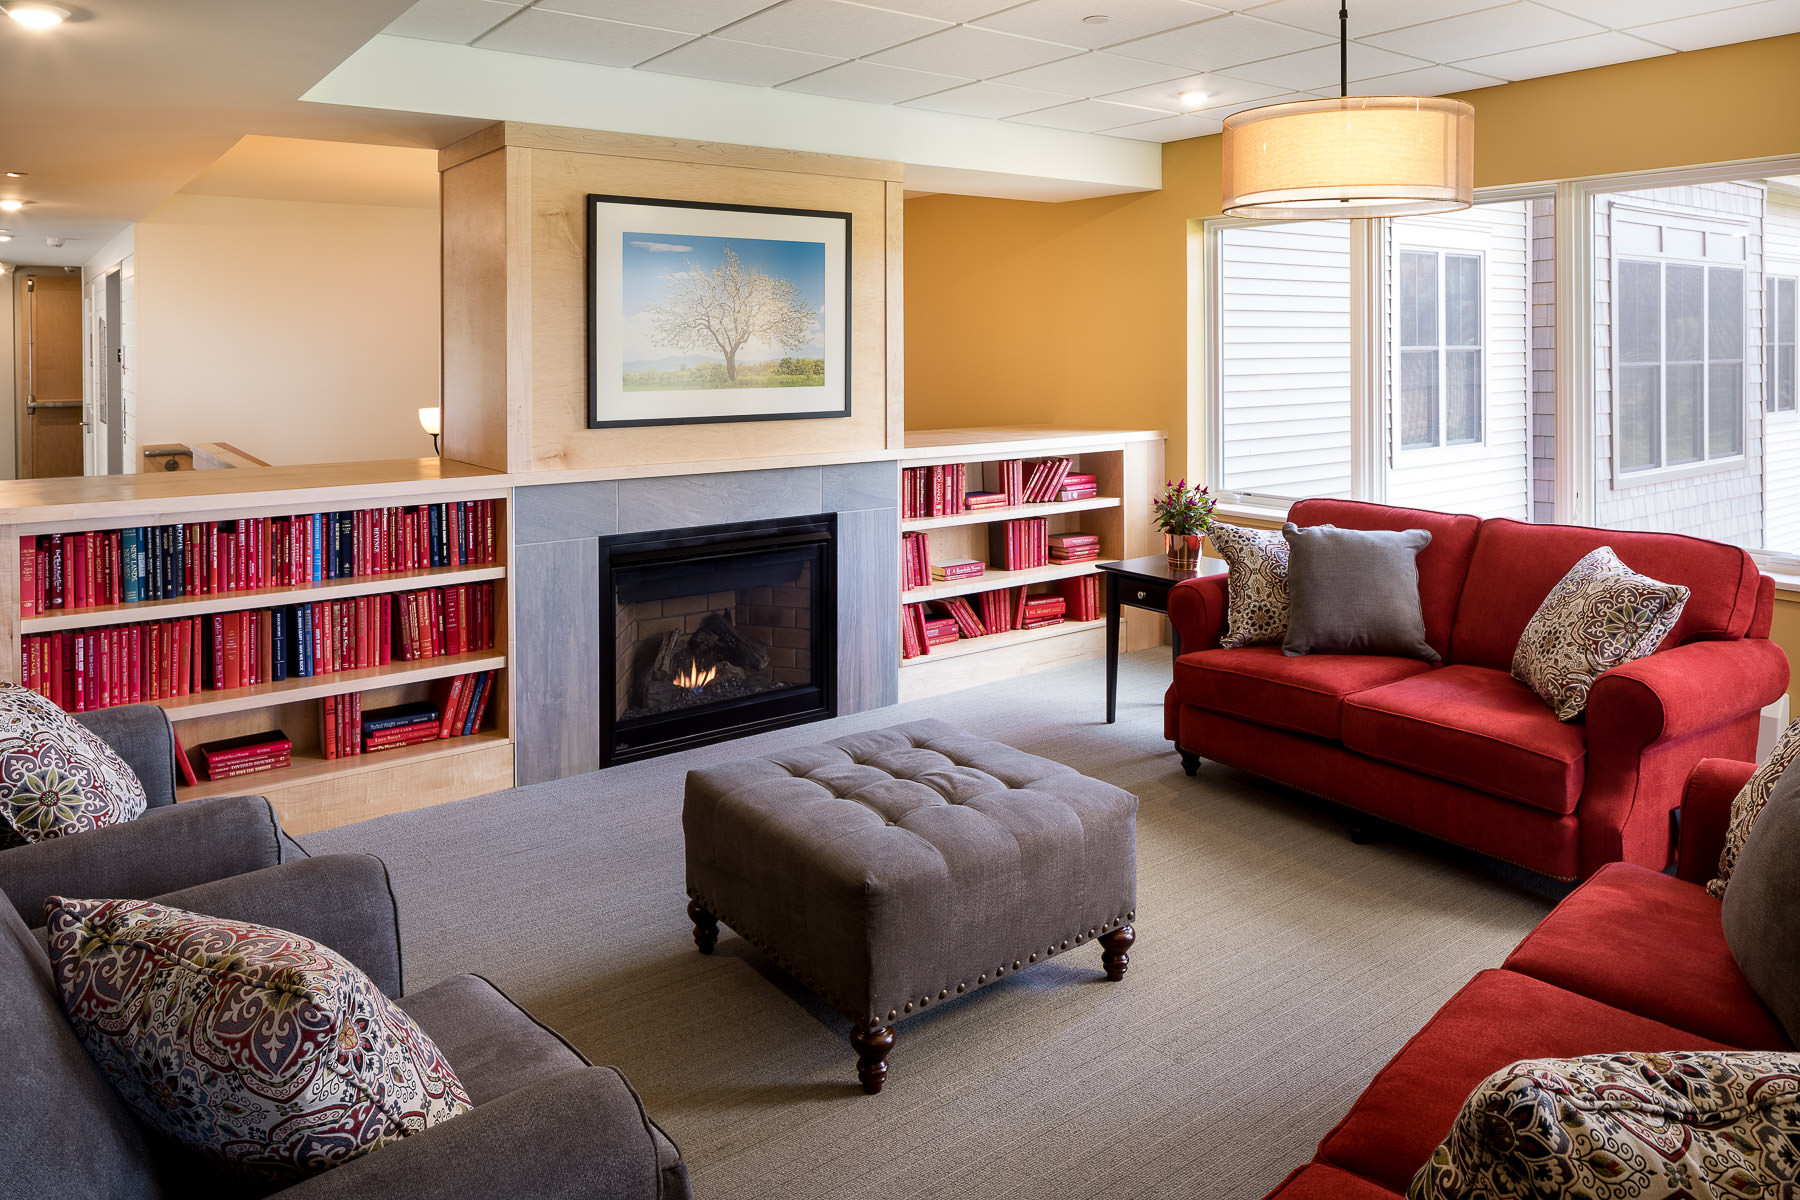 Architectural photo of the community living room in the Strode Independent Living Facility in Randolph by Vermont commercial photographer Stina Booth